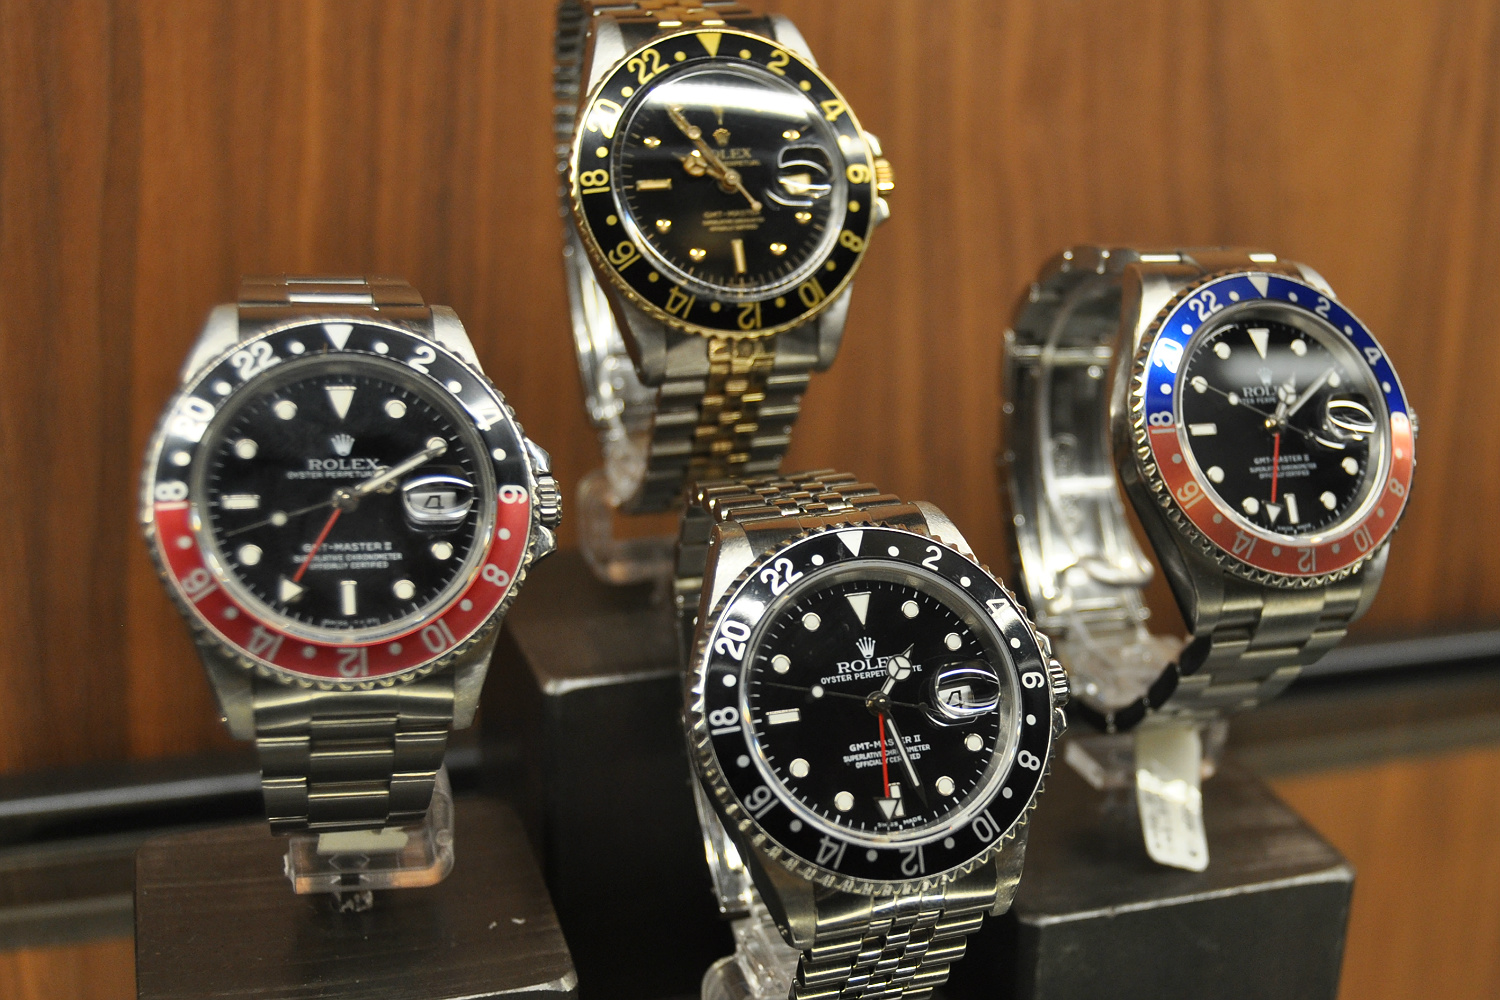 RolexParty